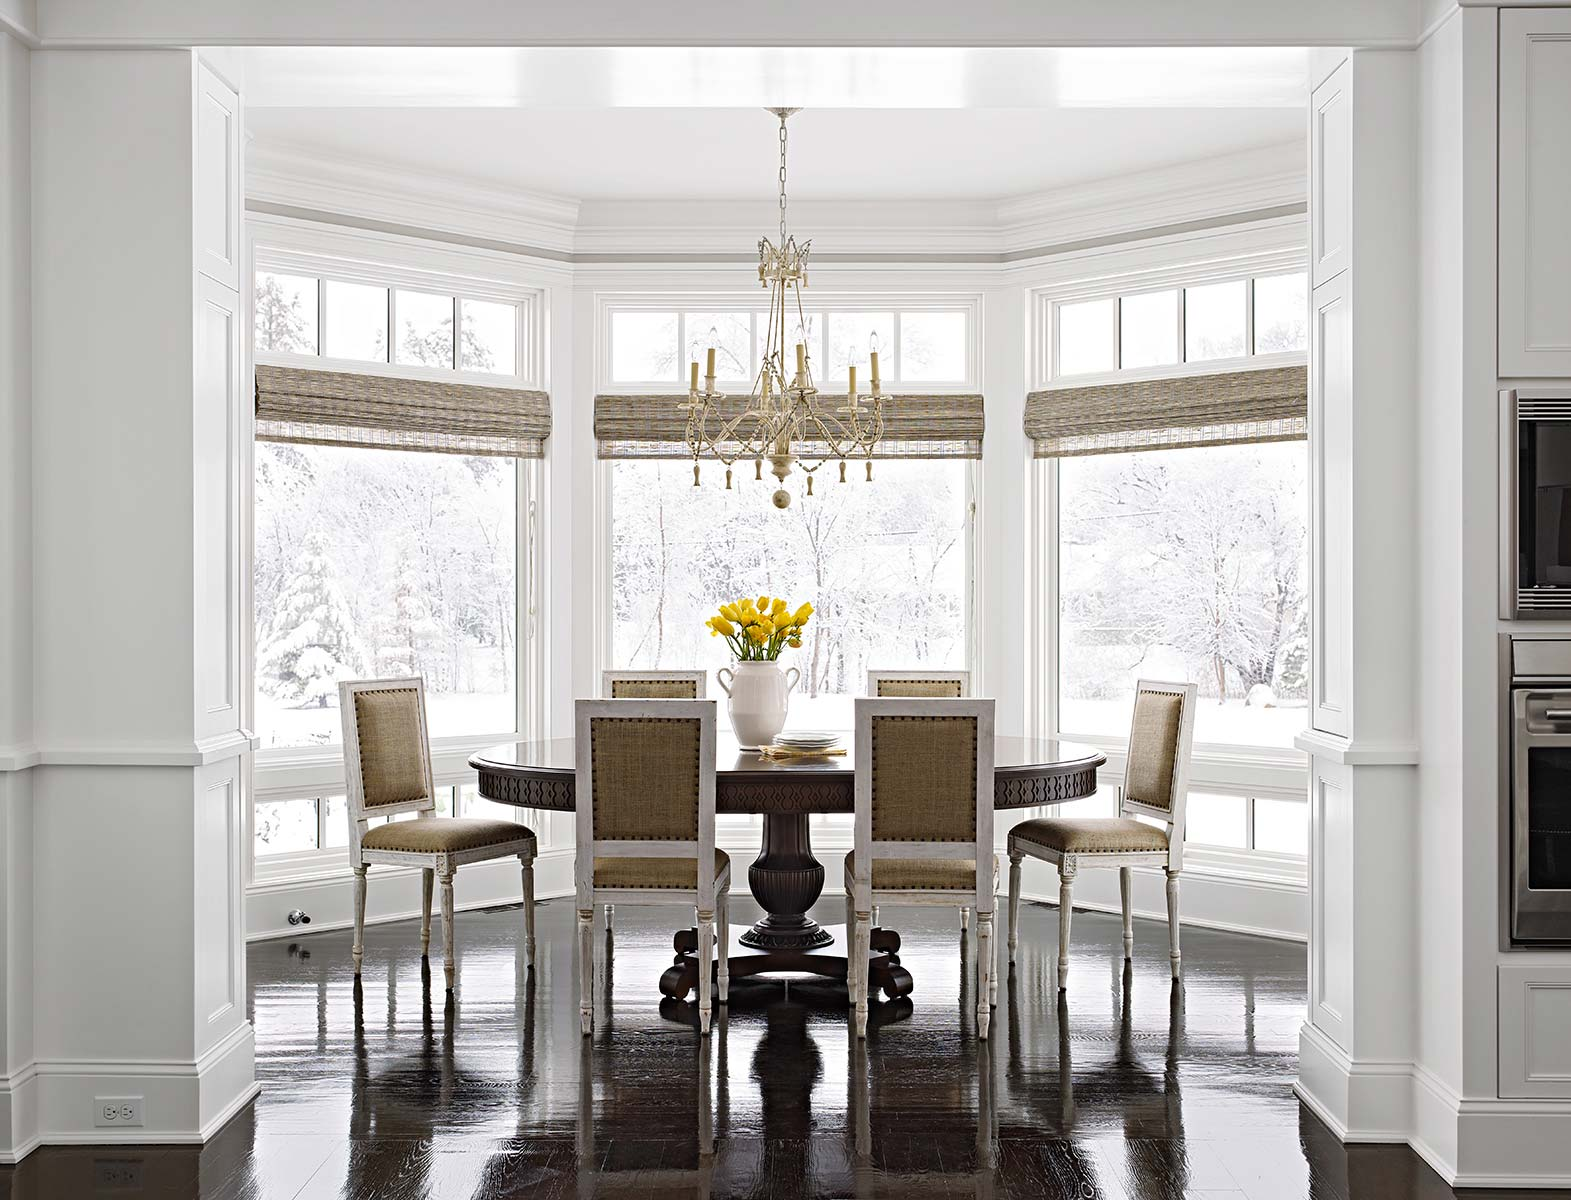 Hot Window Treament Trends To Try This Winter